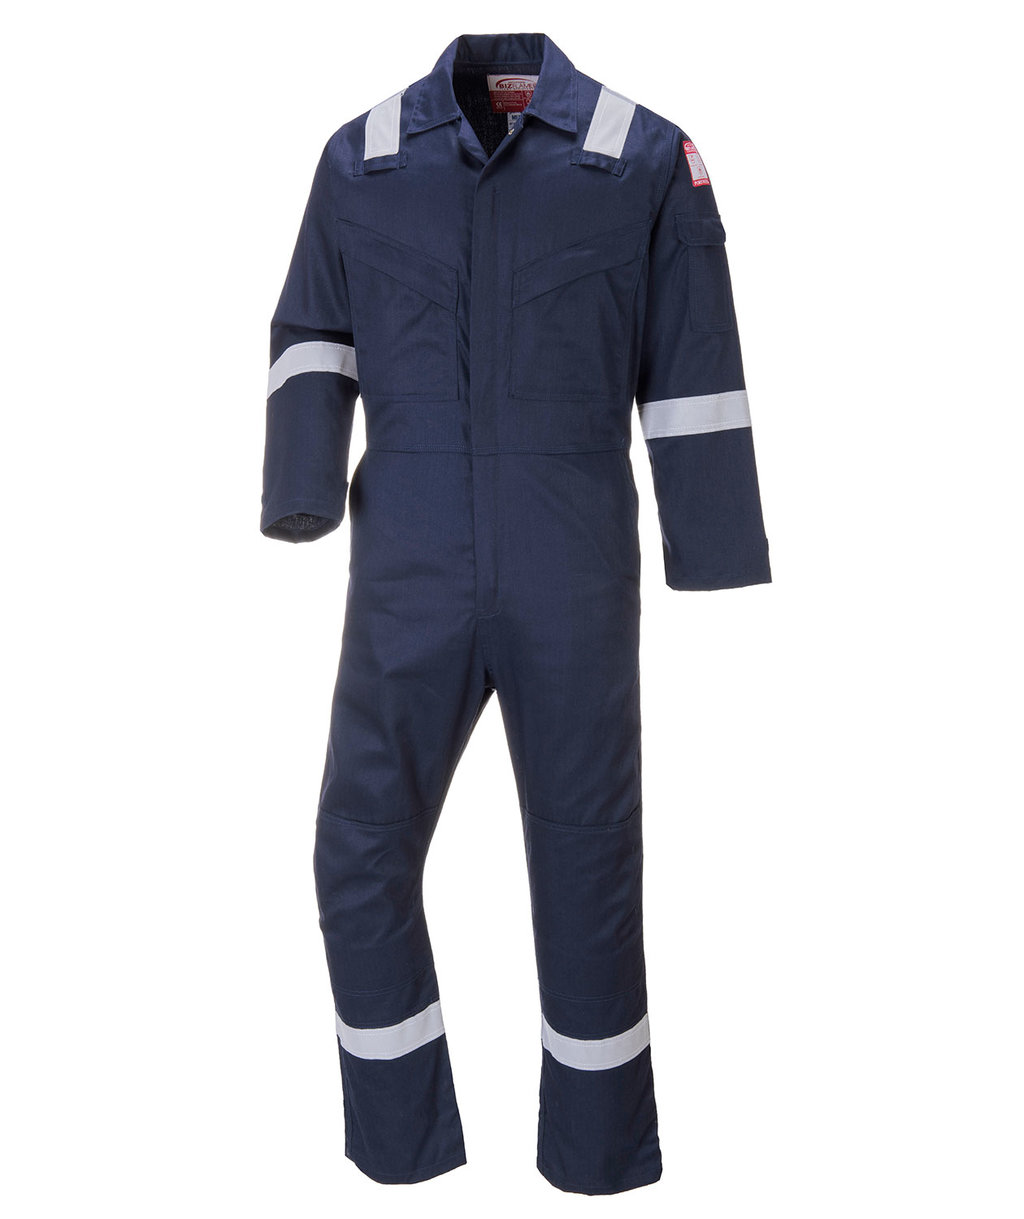 Portwest flammhemmende Overall, Marine